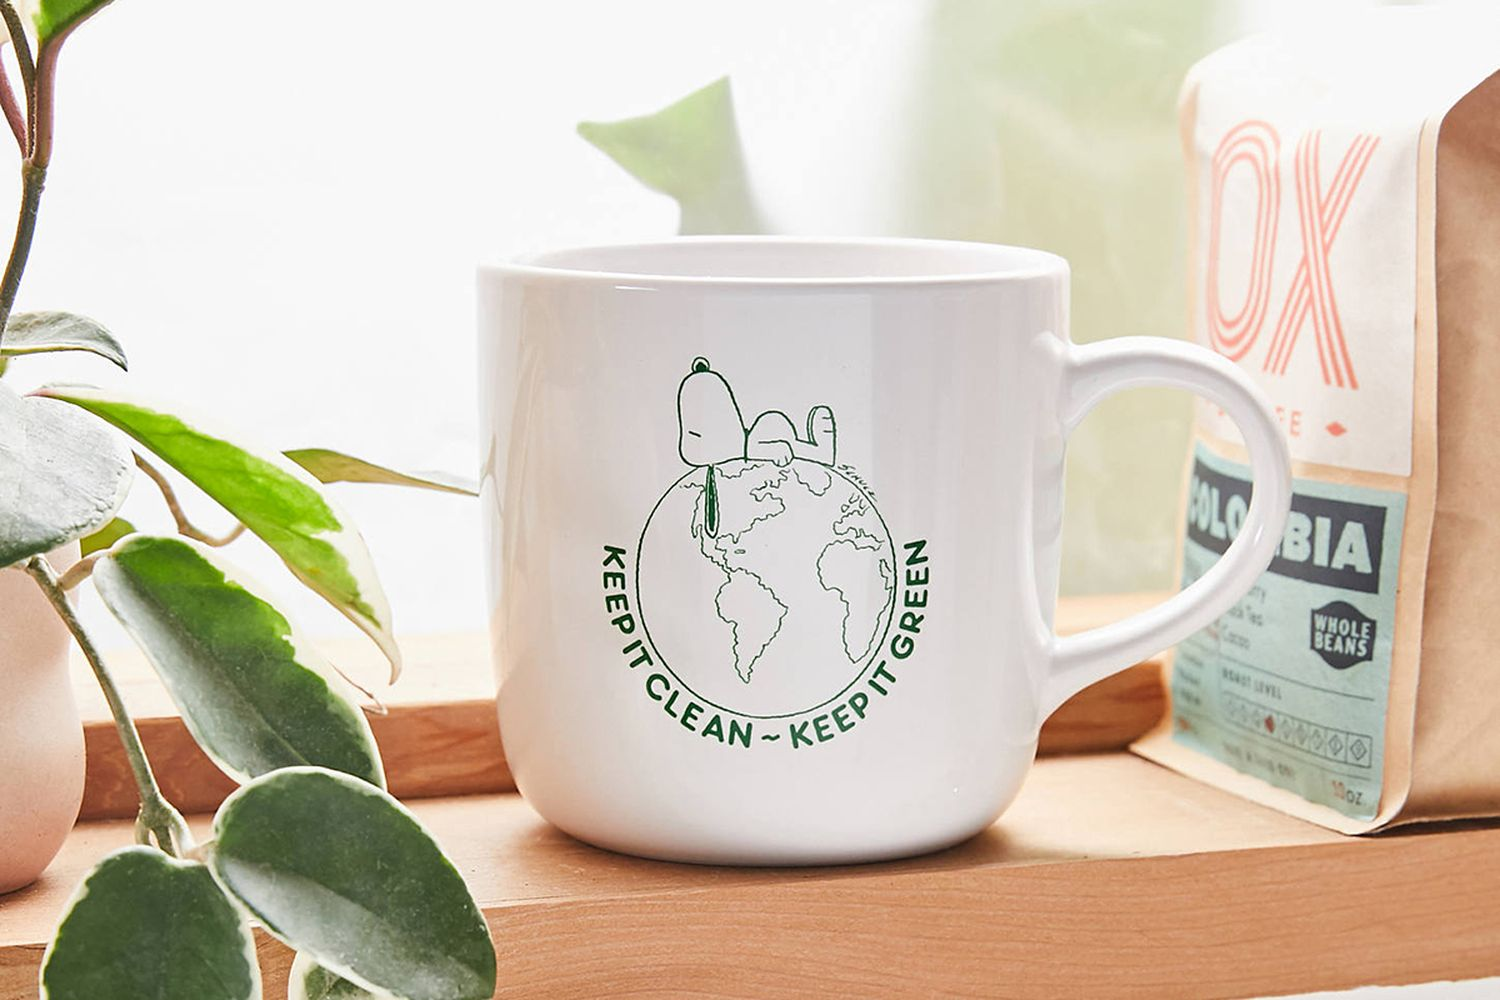 Peanuts Keep It Clean 15 oz Mug